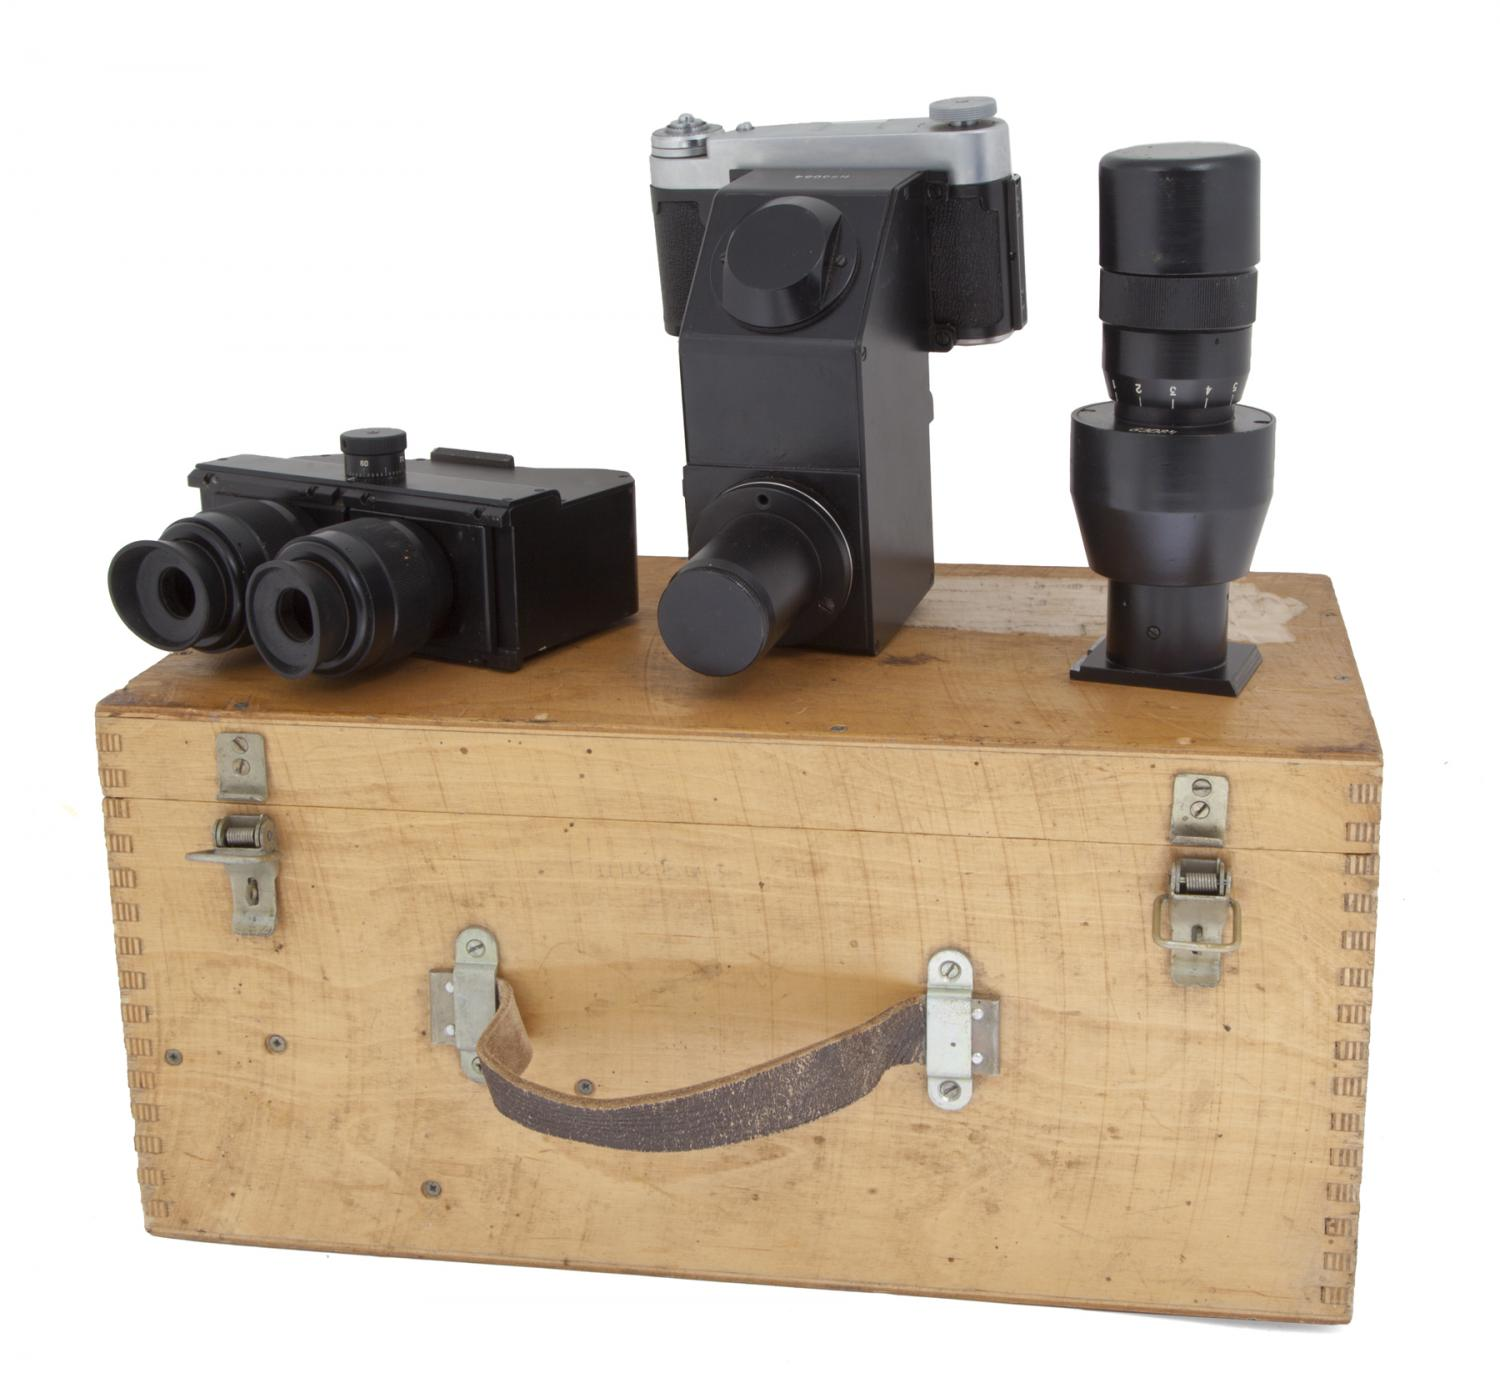 Lenok 'hole in the wall' camera outfit (Pic: Julien's Auctions)